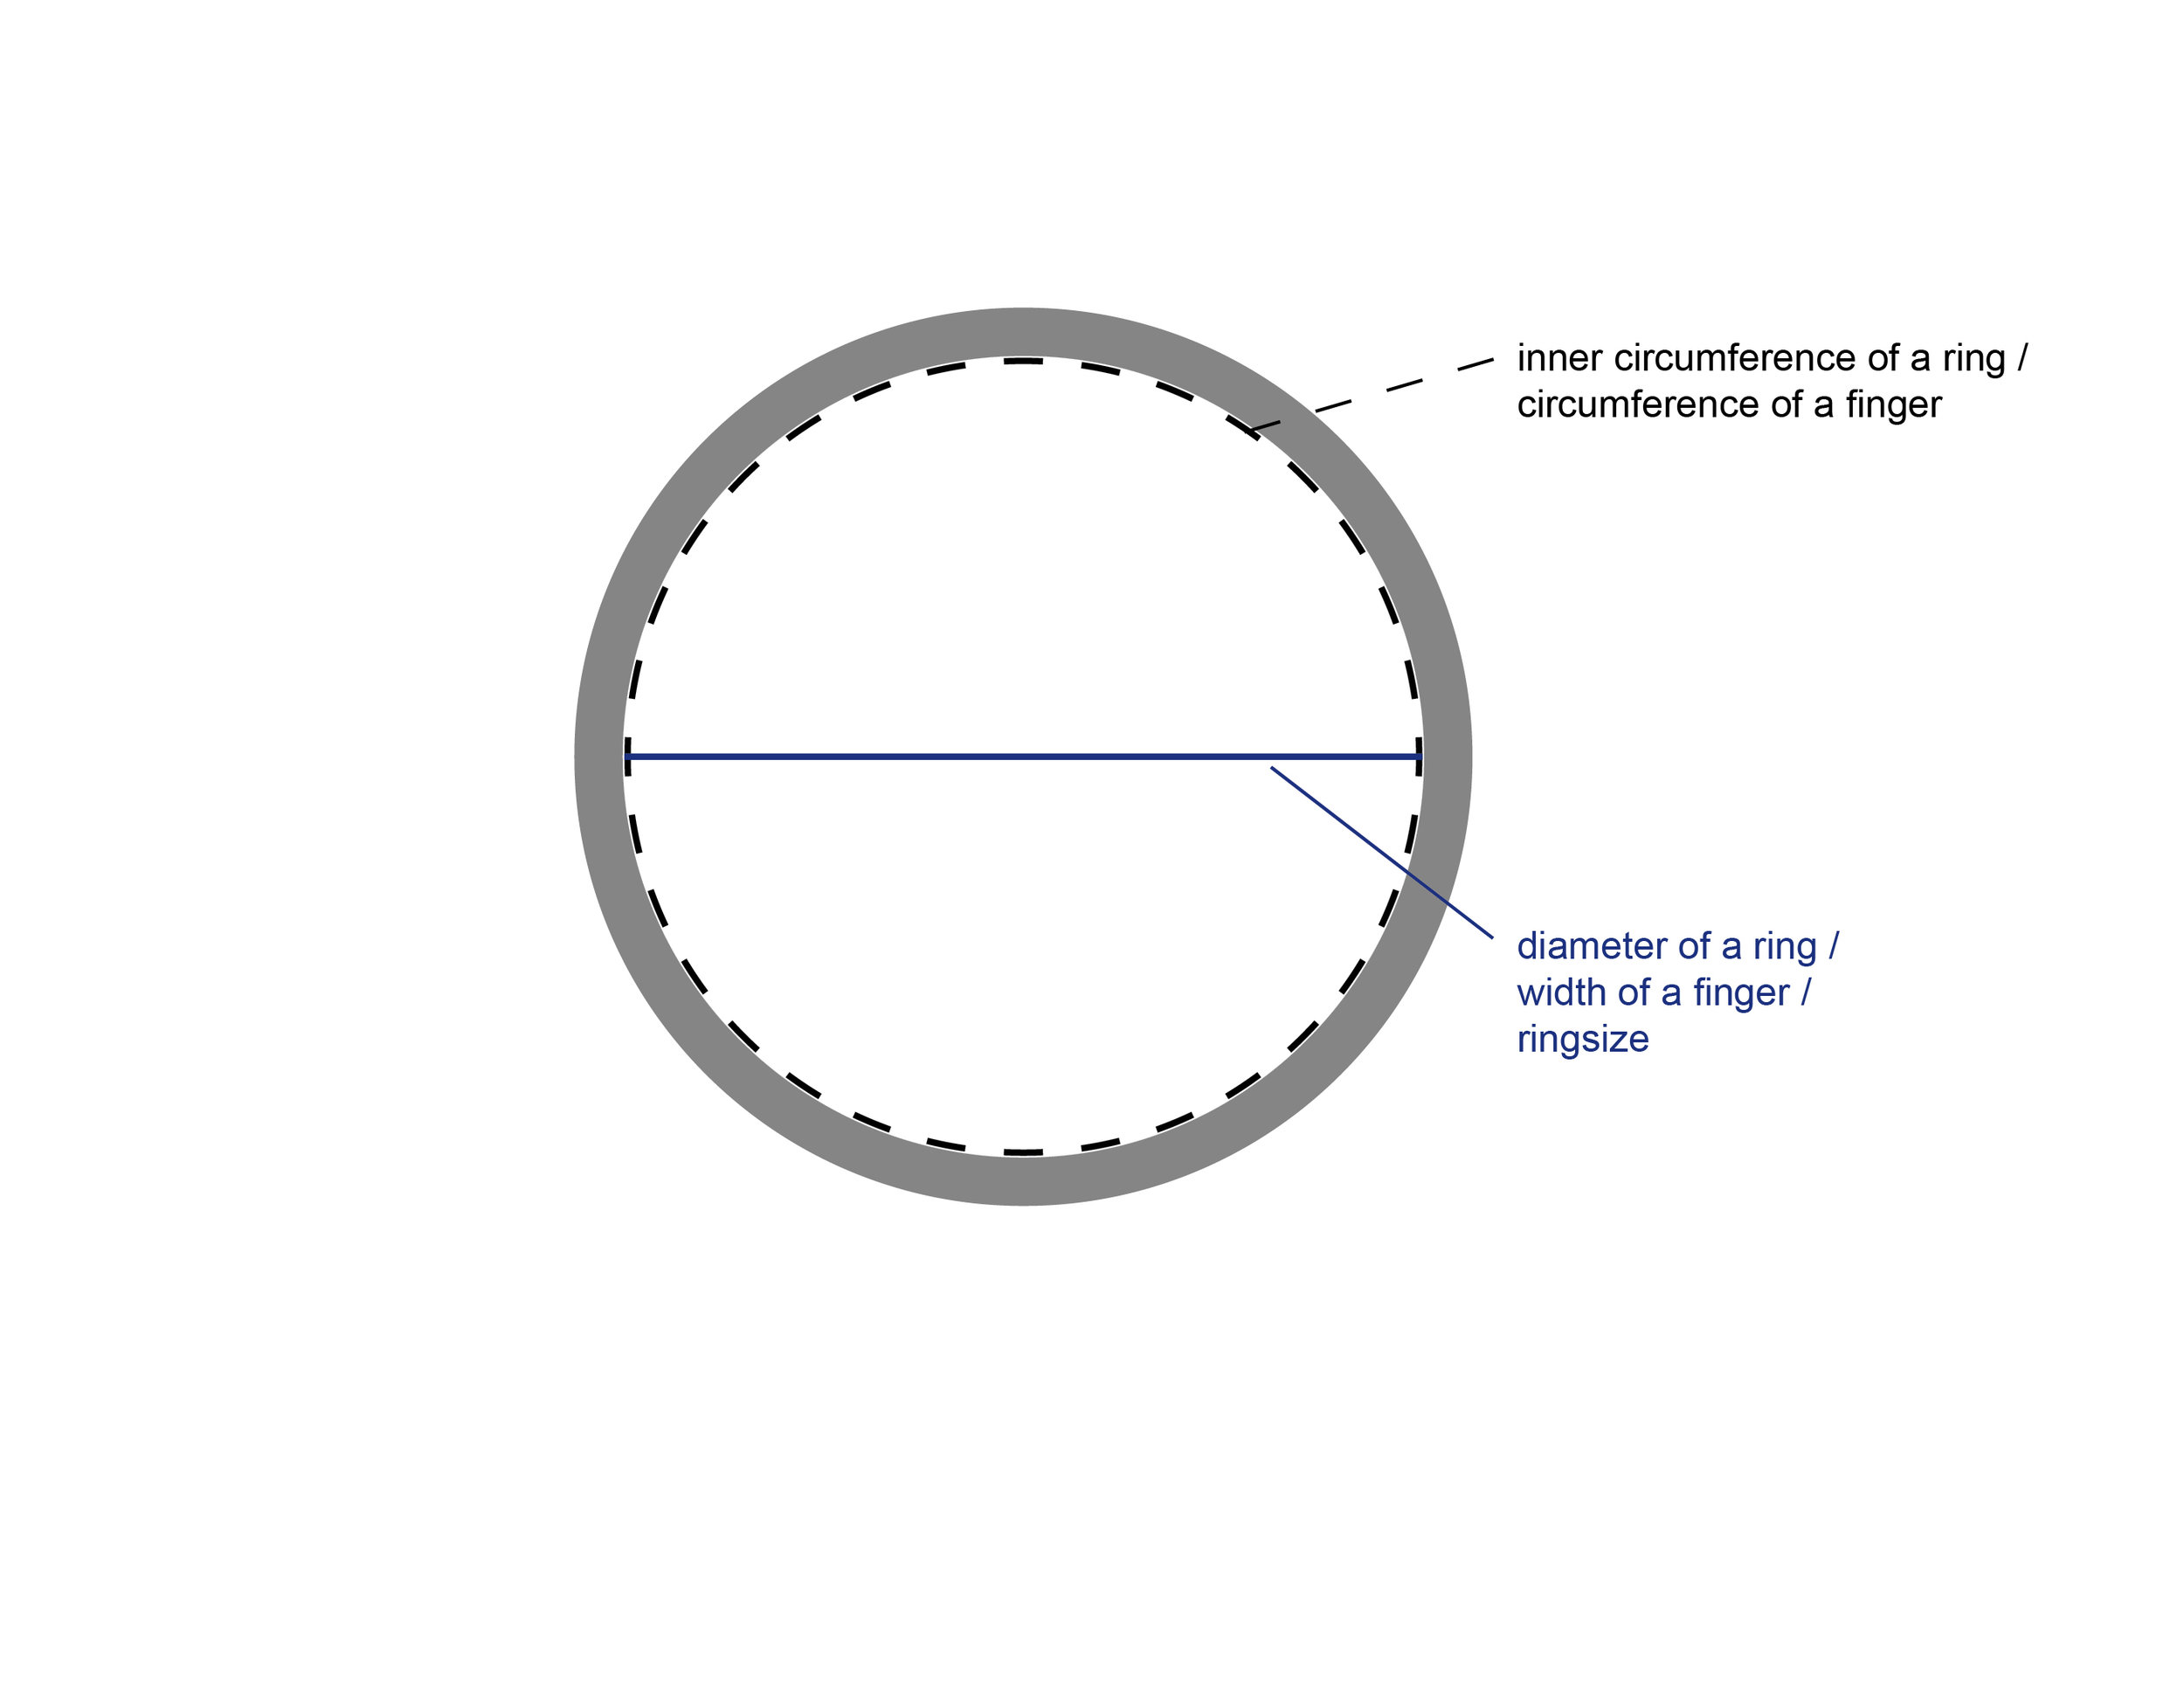 ring sizing circumference diameter